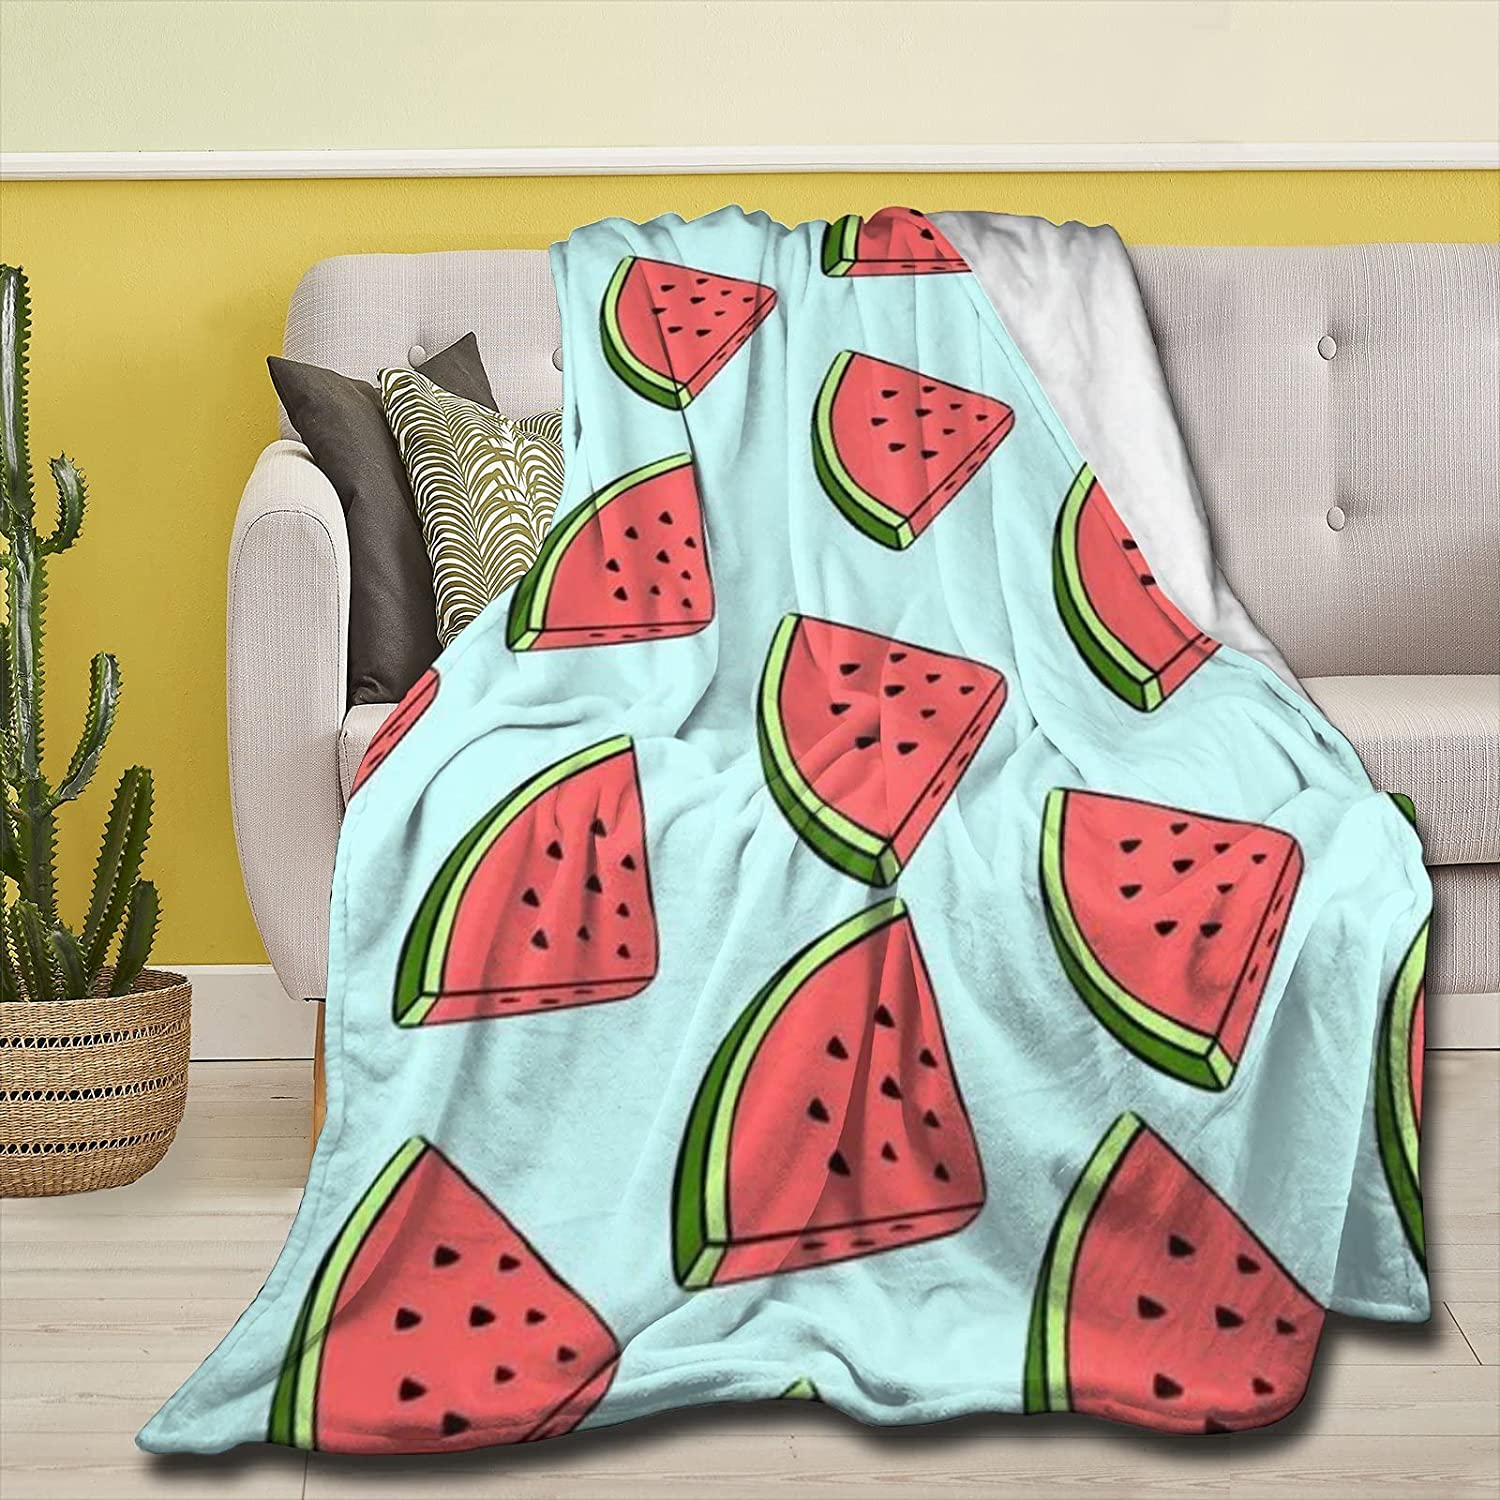 Tuxhhzdda Juicy Watermelon Throw Luxury Flannel Limited Special Price Used Bed S Blankets for